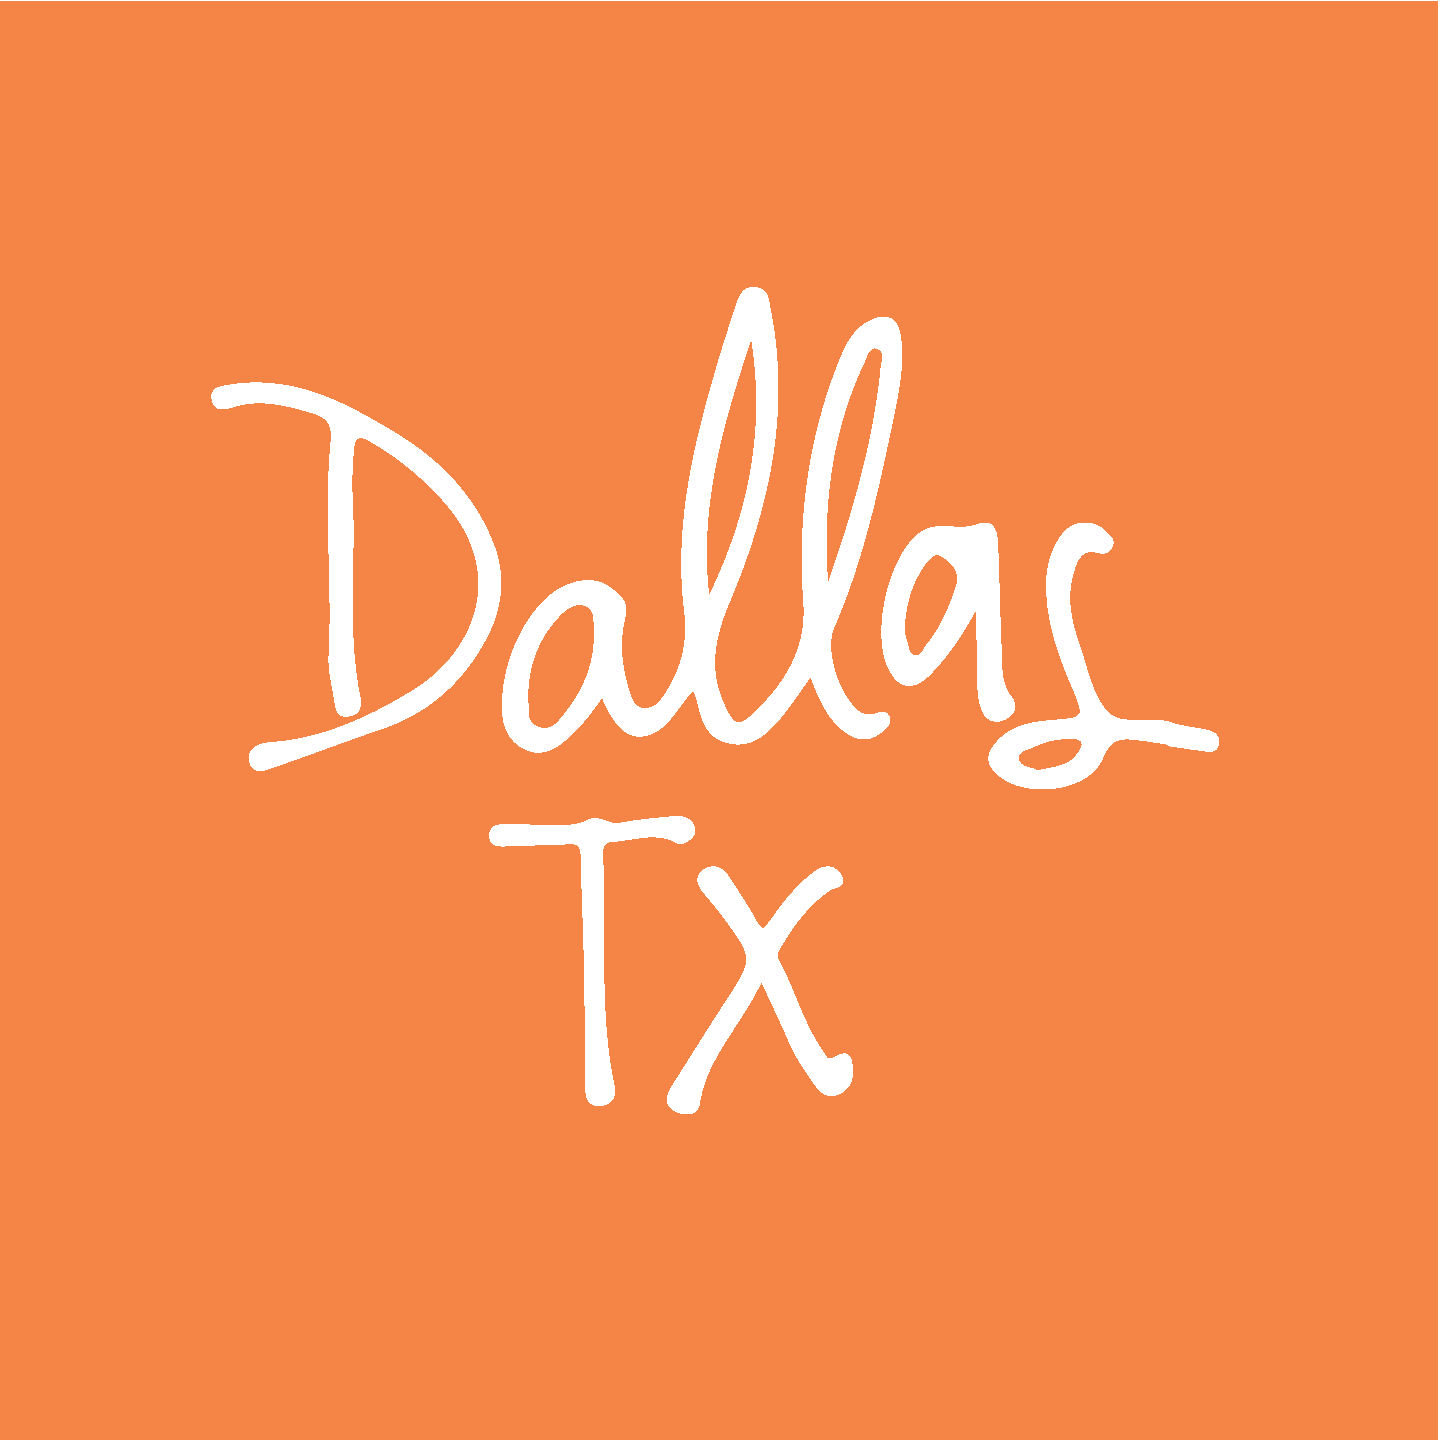 Dallas, TX Mobile Tour Stop - October 15 – November 13, 2019